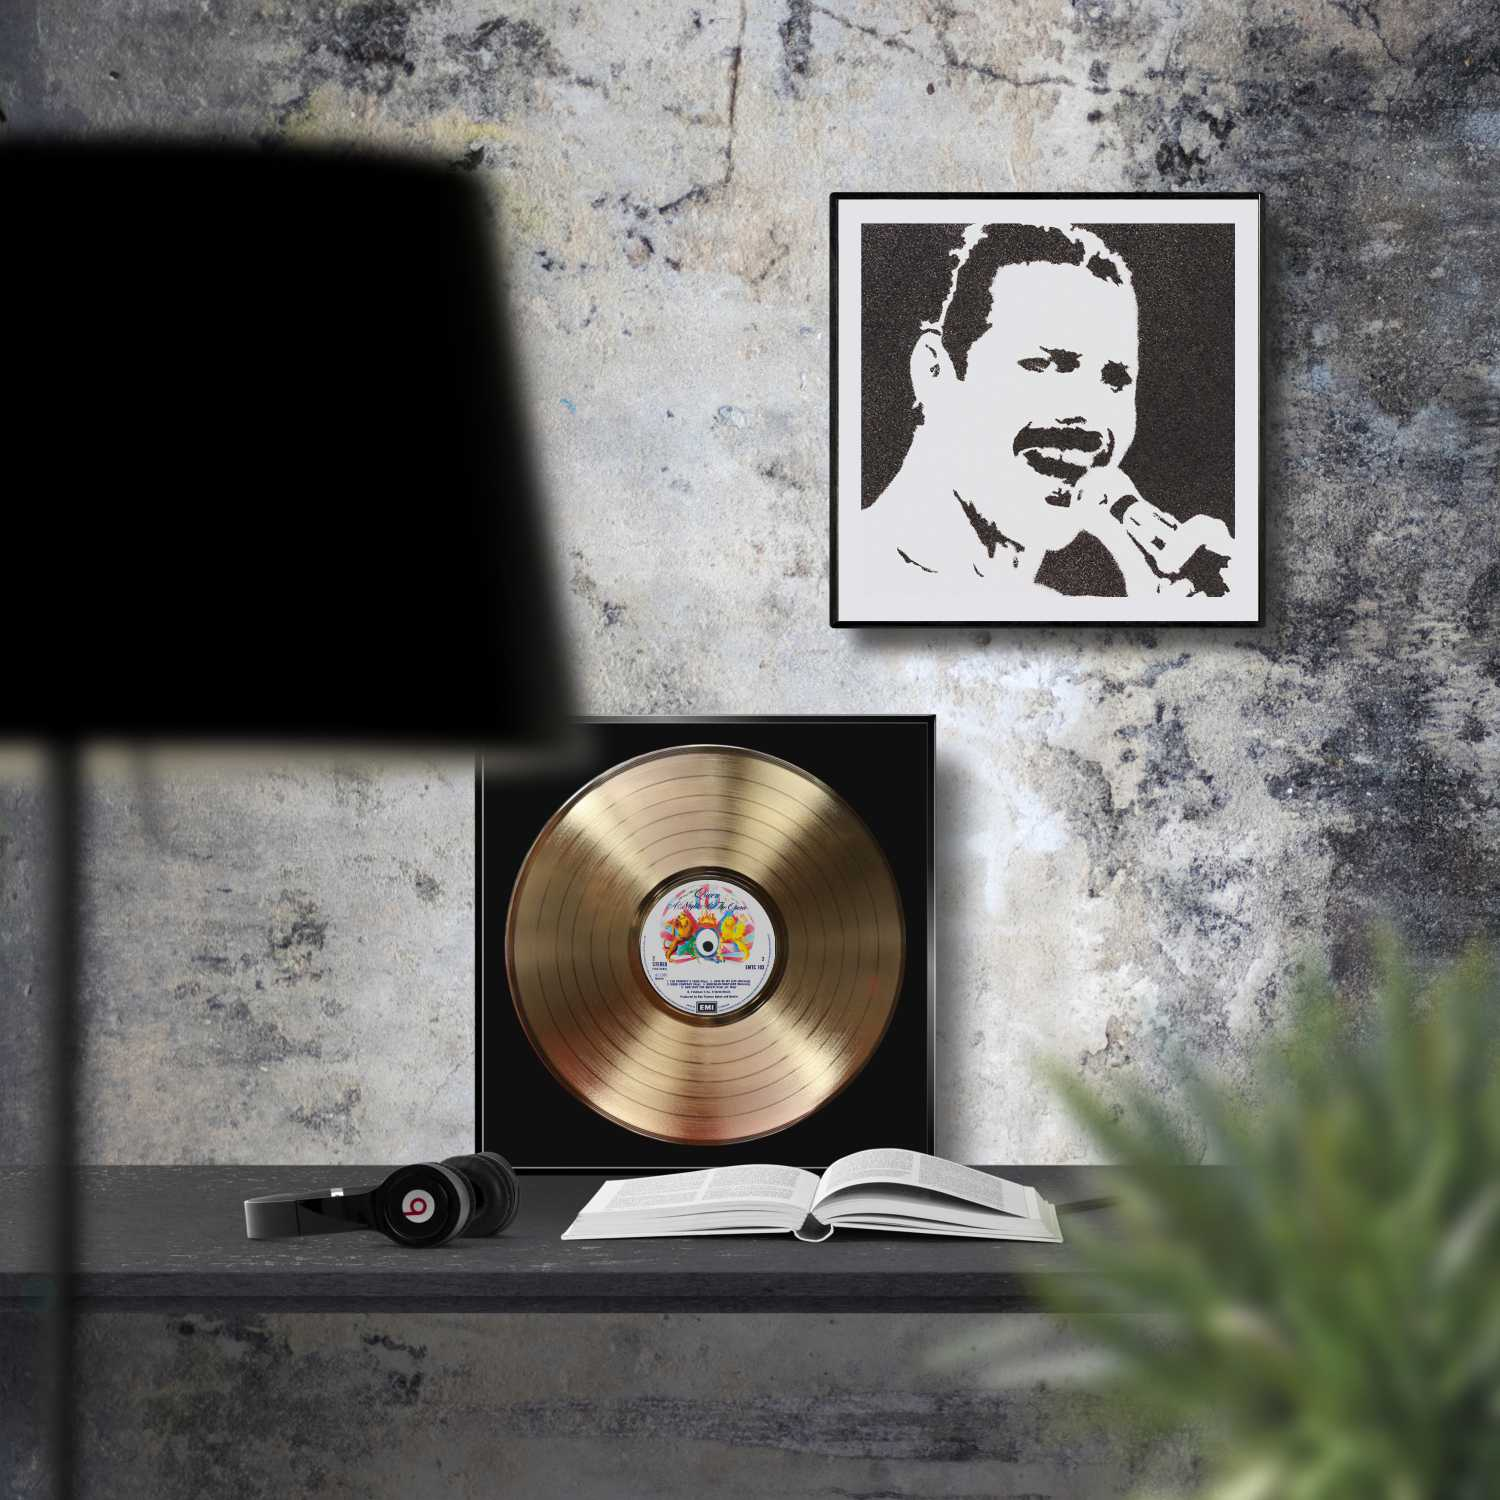 Queen A Night At The Opera Framed Golden Record